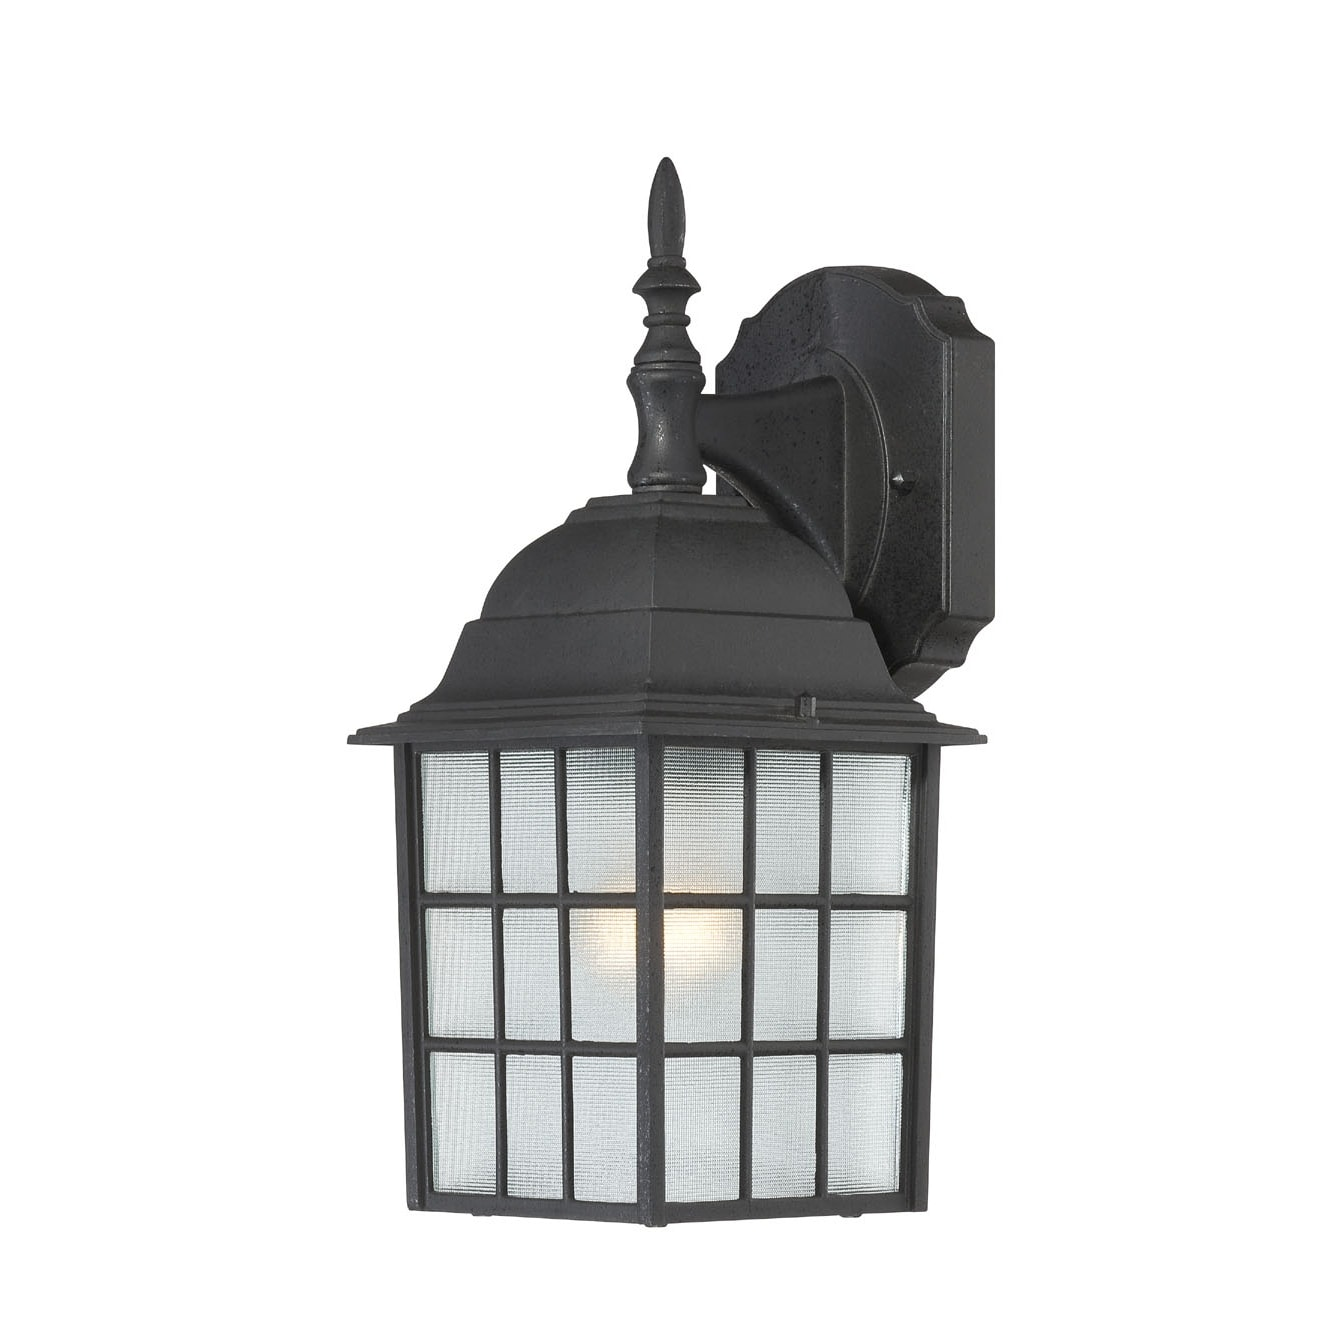 Nuvo 'Adams' 1-light Textured Black 14-inch Wall Sconce